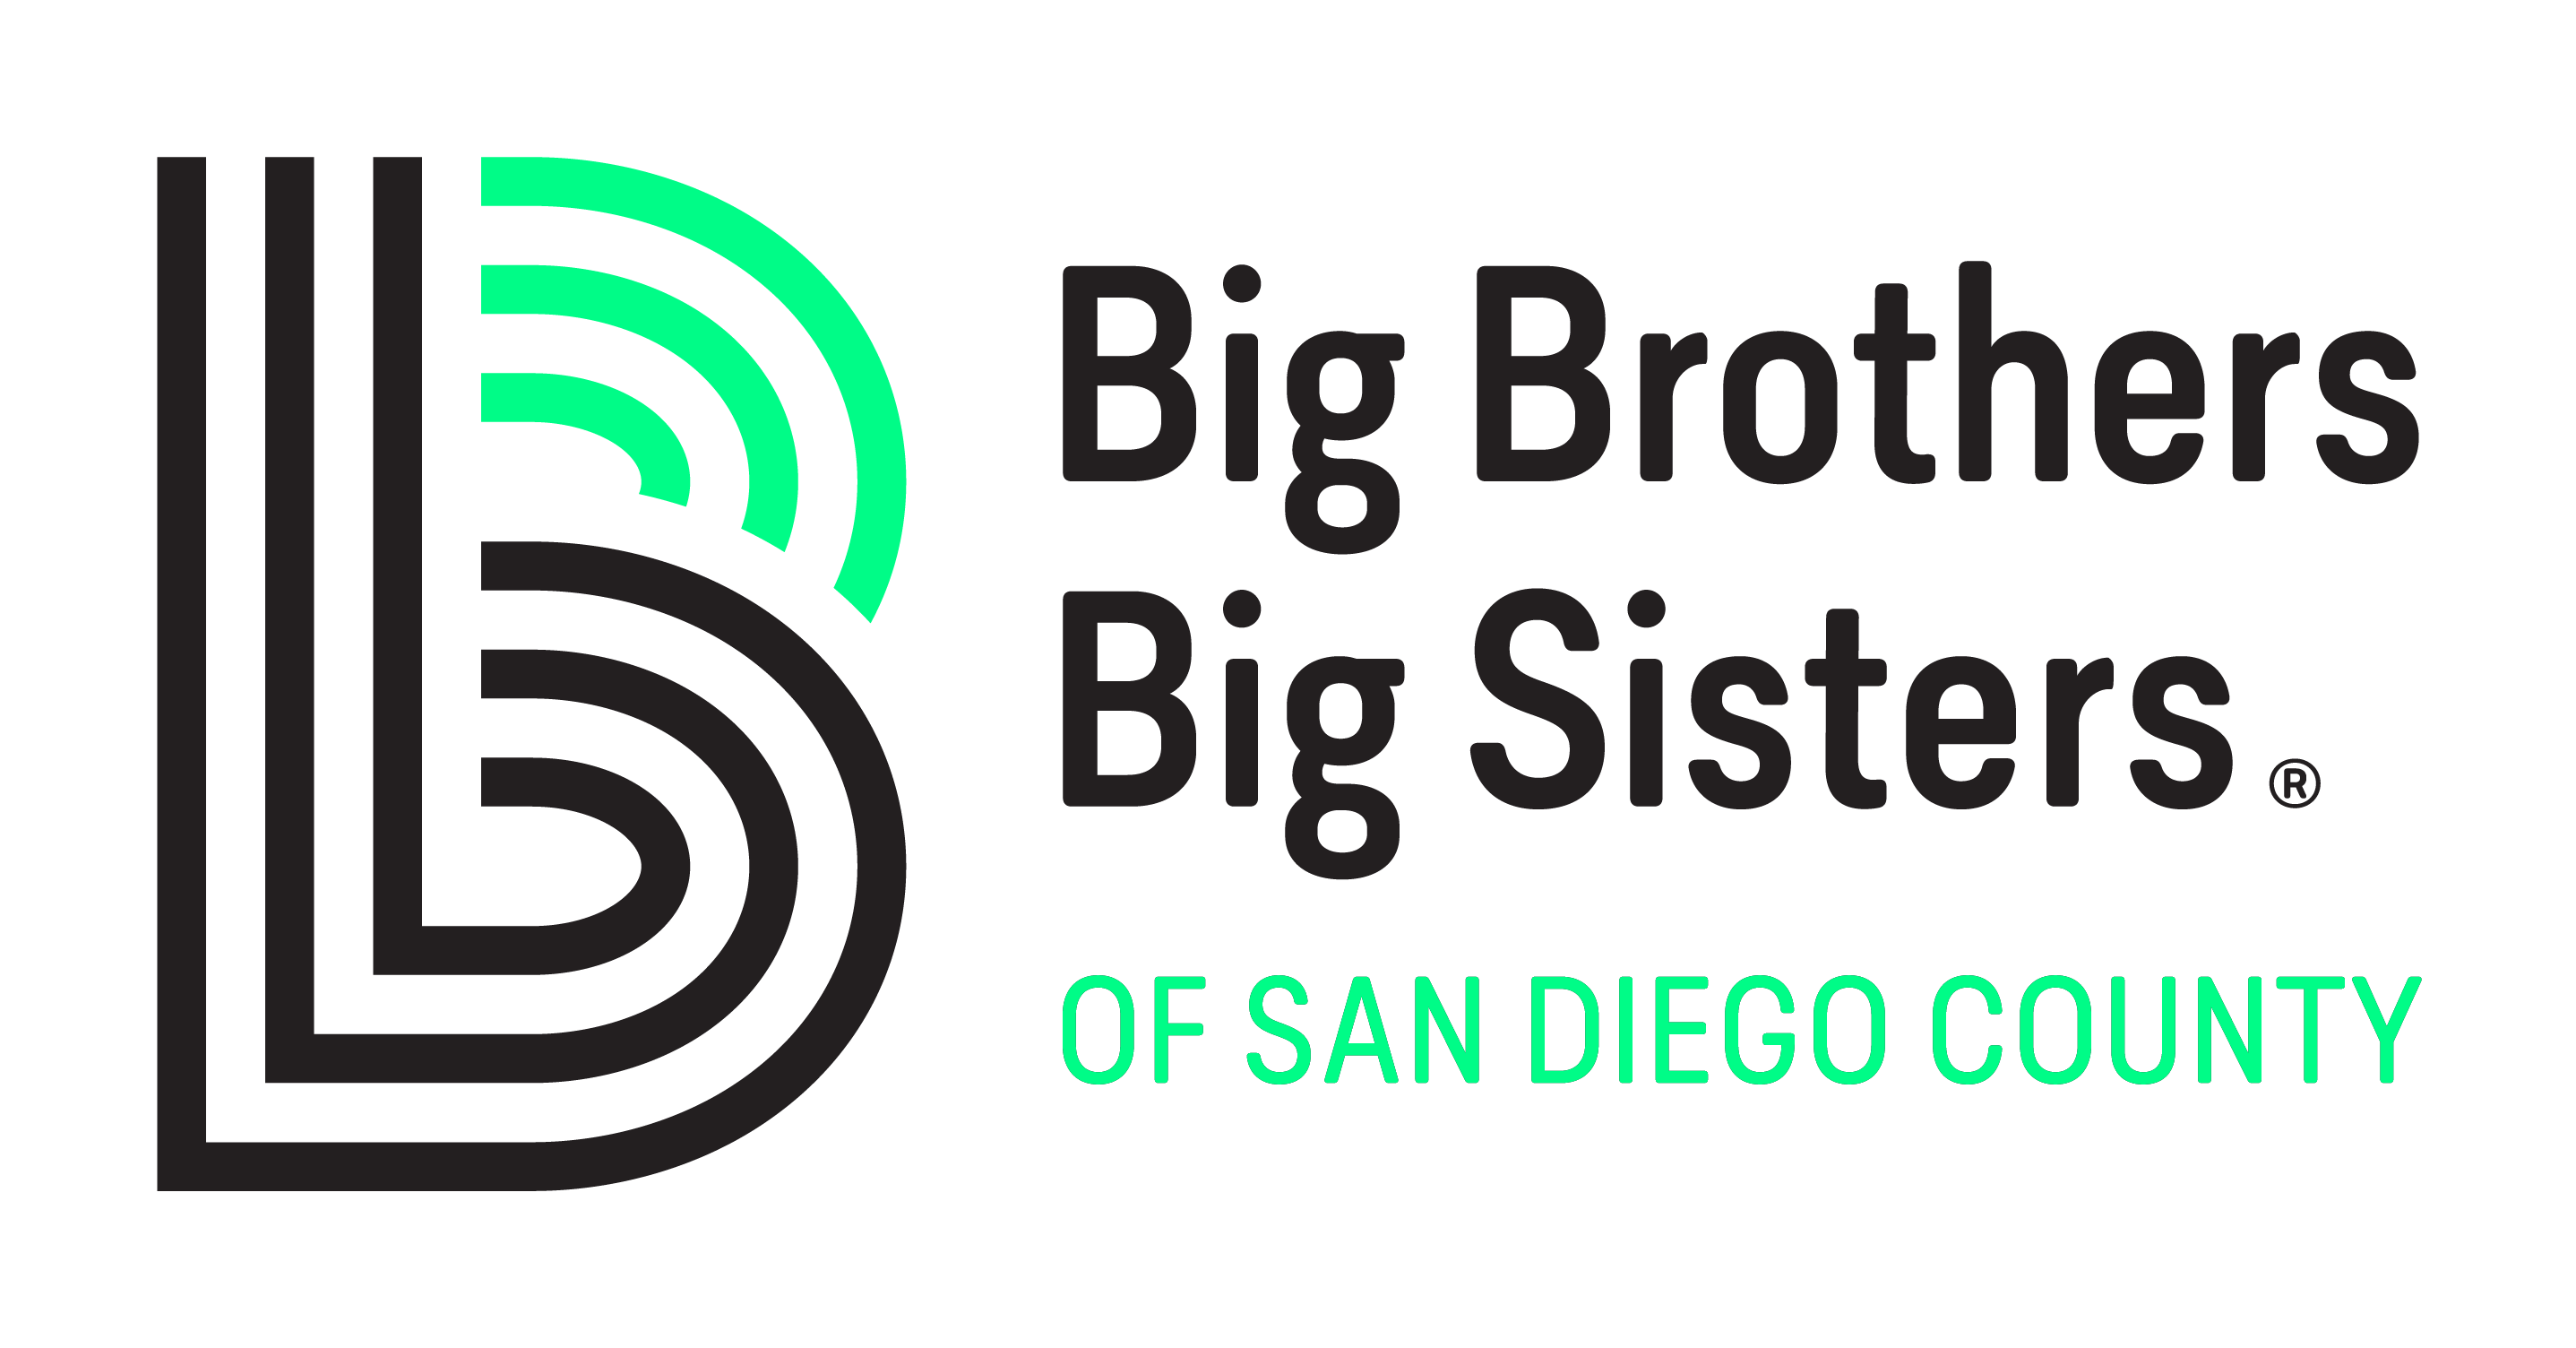 Big Brothers Big Sisters of San Diego County banner